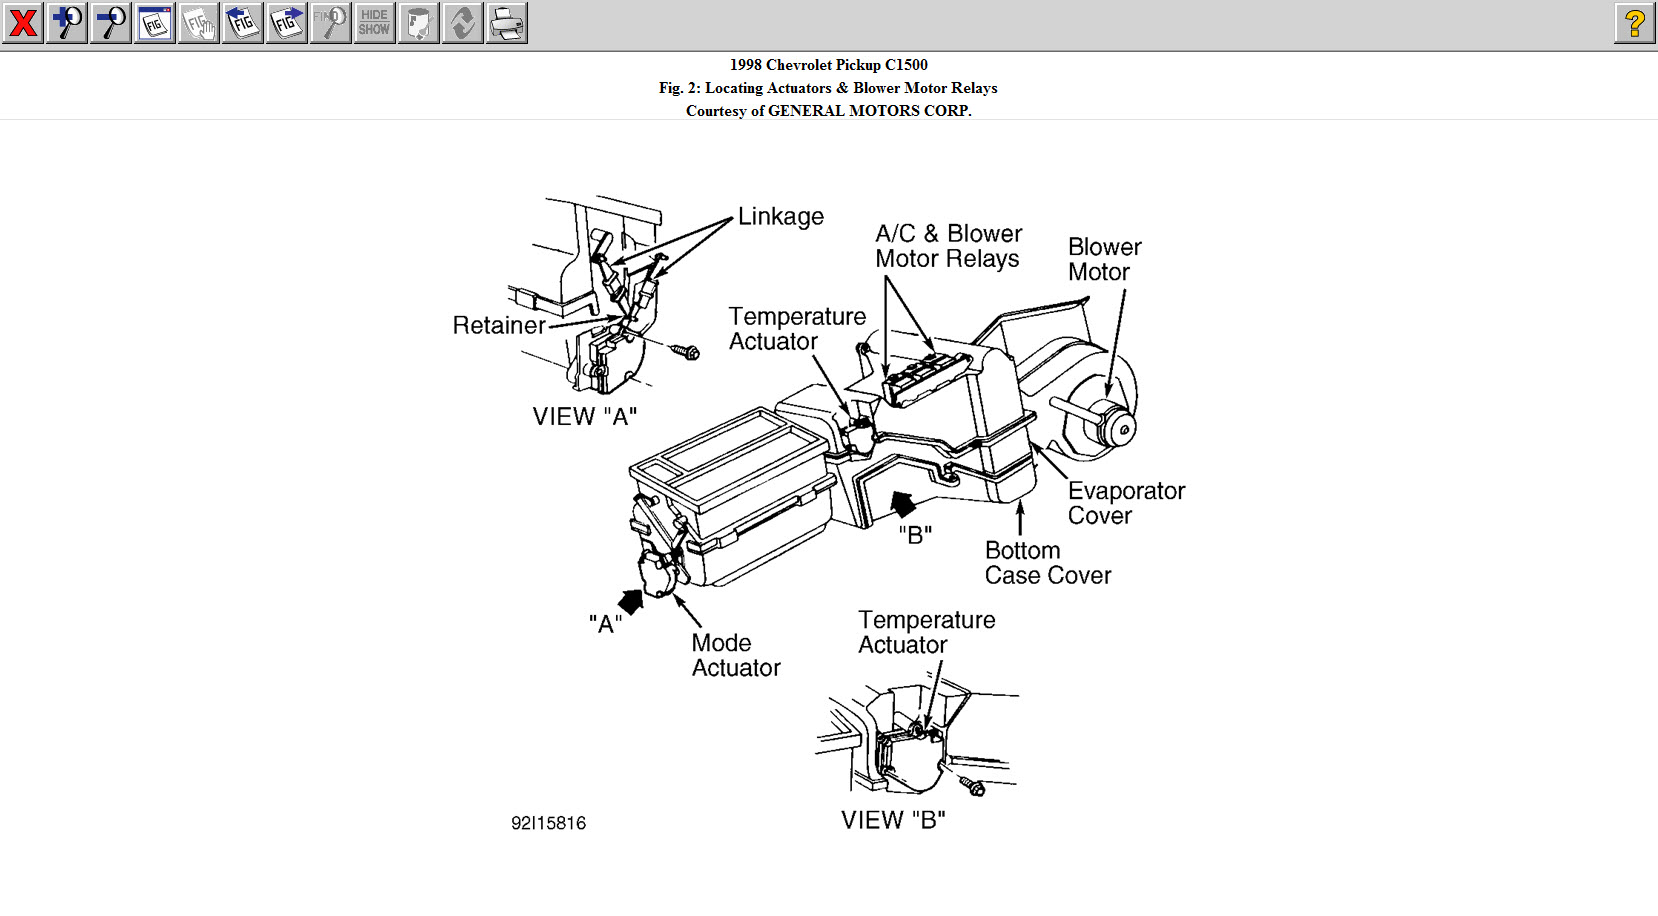 Swell 2004 Cts Engine Diagram Wiring Library Wiring Digital Resources Bemuashebarightsorg